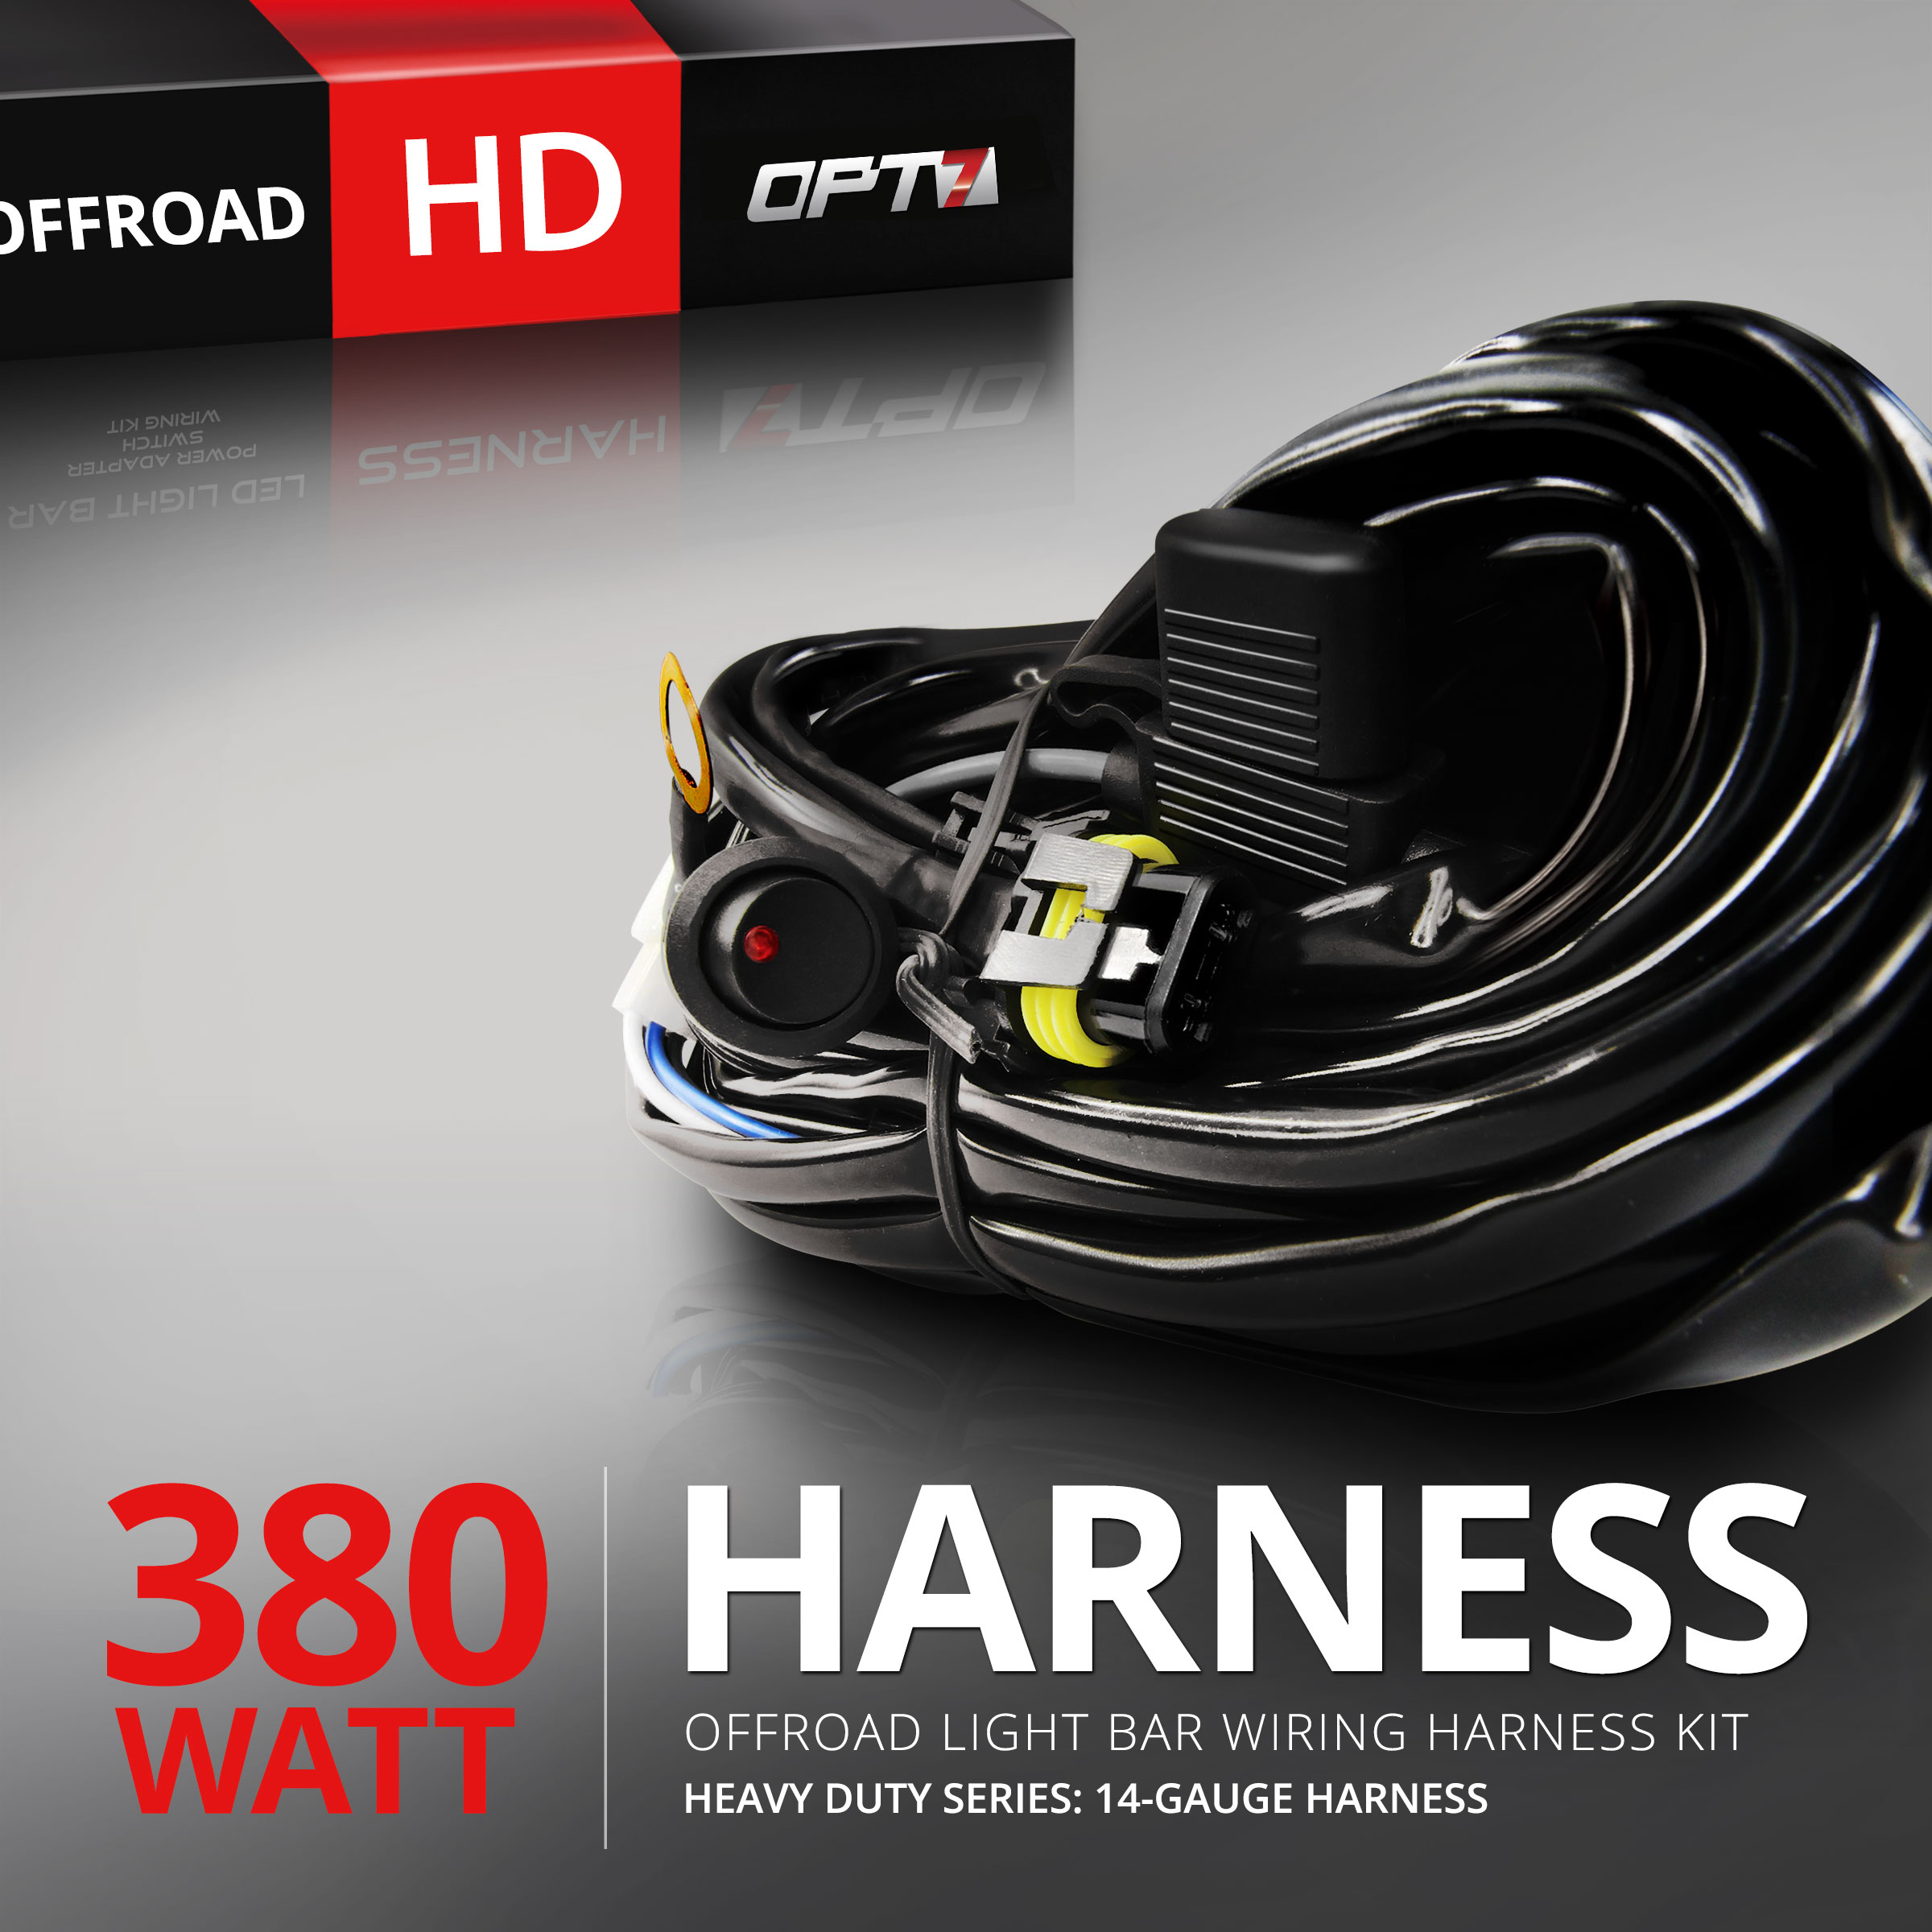 Opt7 14 Gauge 380w Wiring Harness W Switch For Off Road Led Light Bar Kit 11ft Dimmer Strobe 80ft Range Plug And Play Waterproof Relay